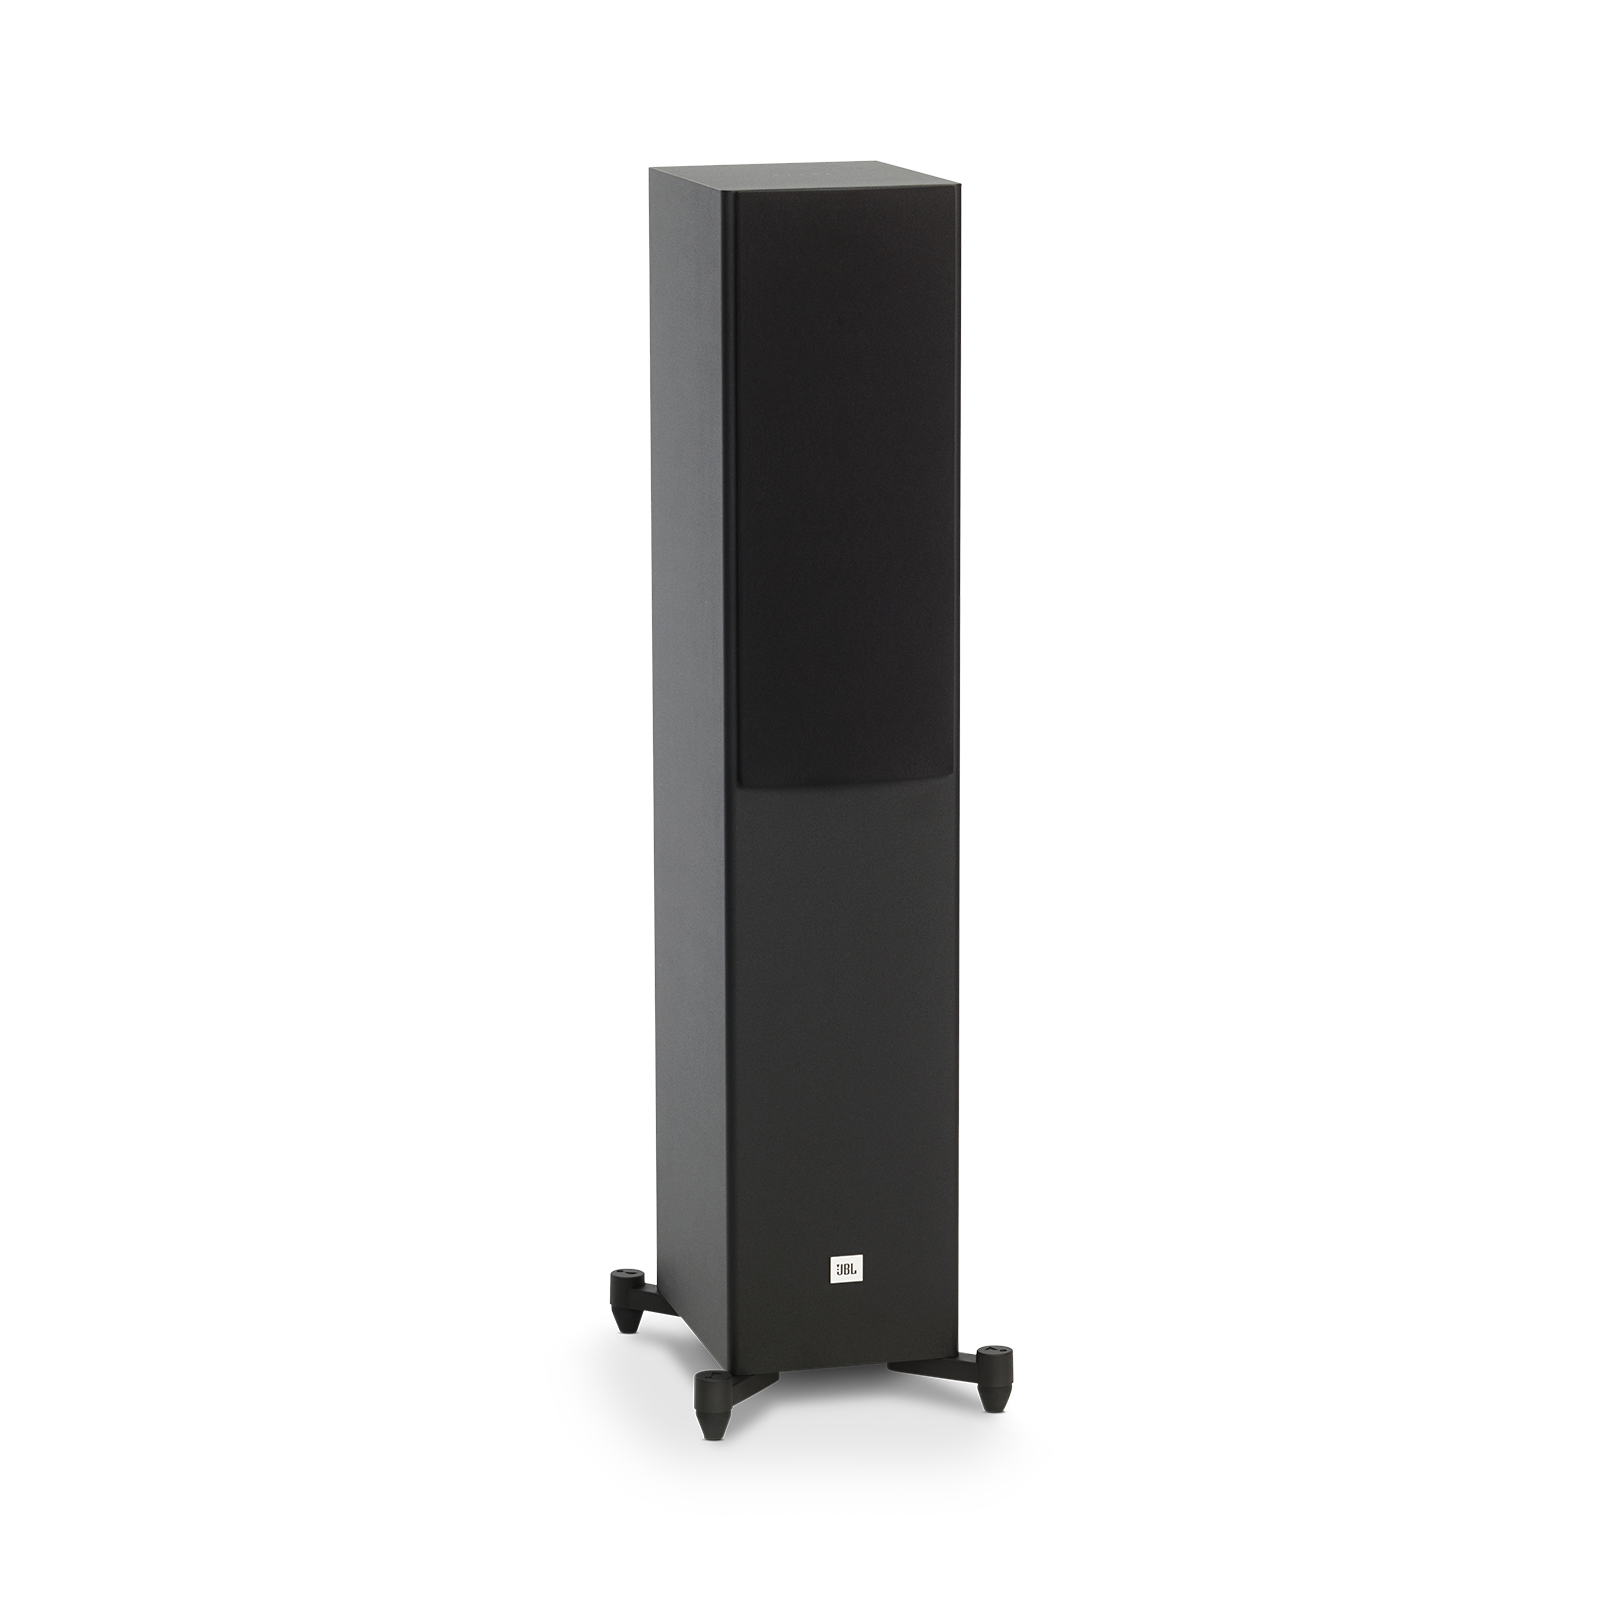 JBL Stage A170 - Black - Home Audio Loudspeaker System - Hero